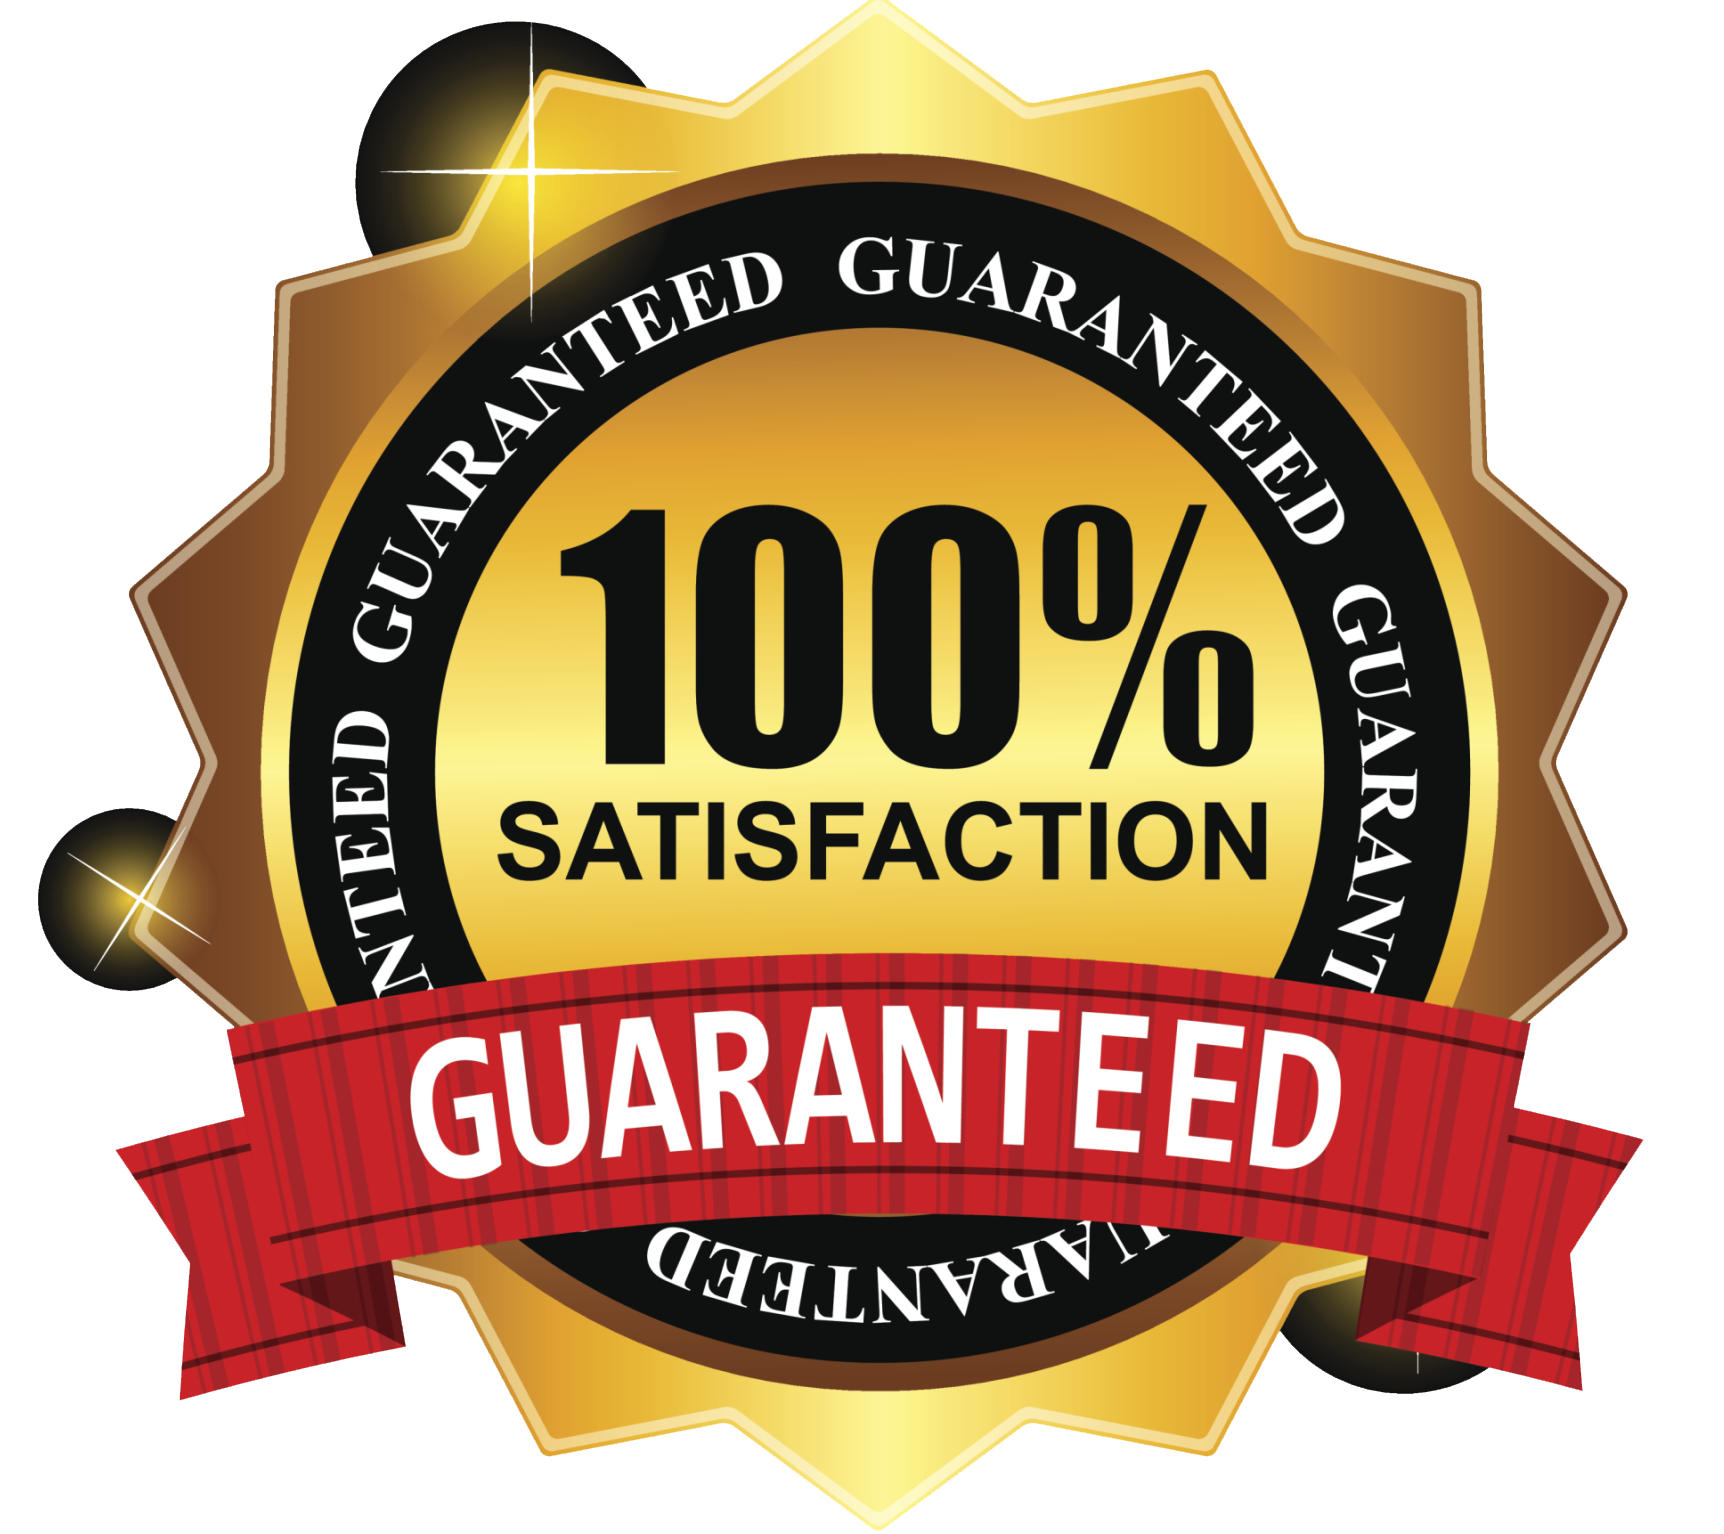 Vector quality guarantee. High embroidery digitizing art